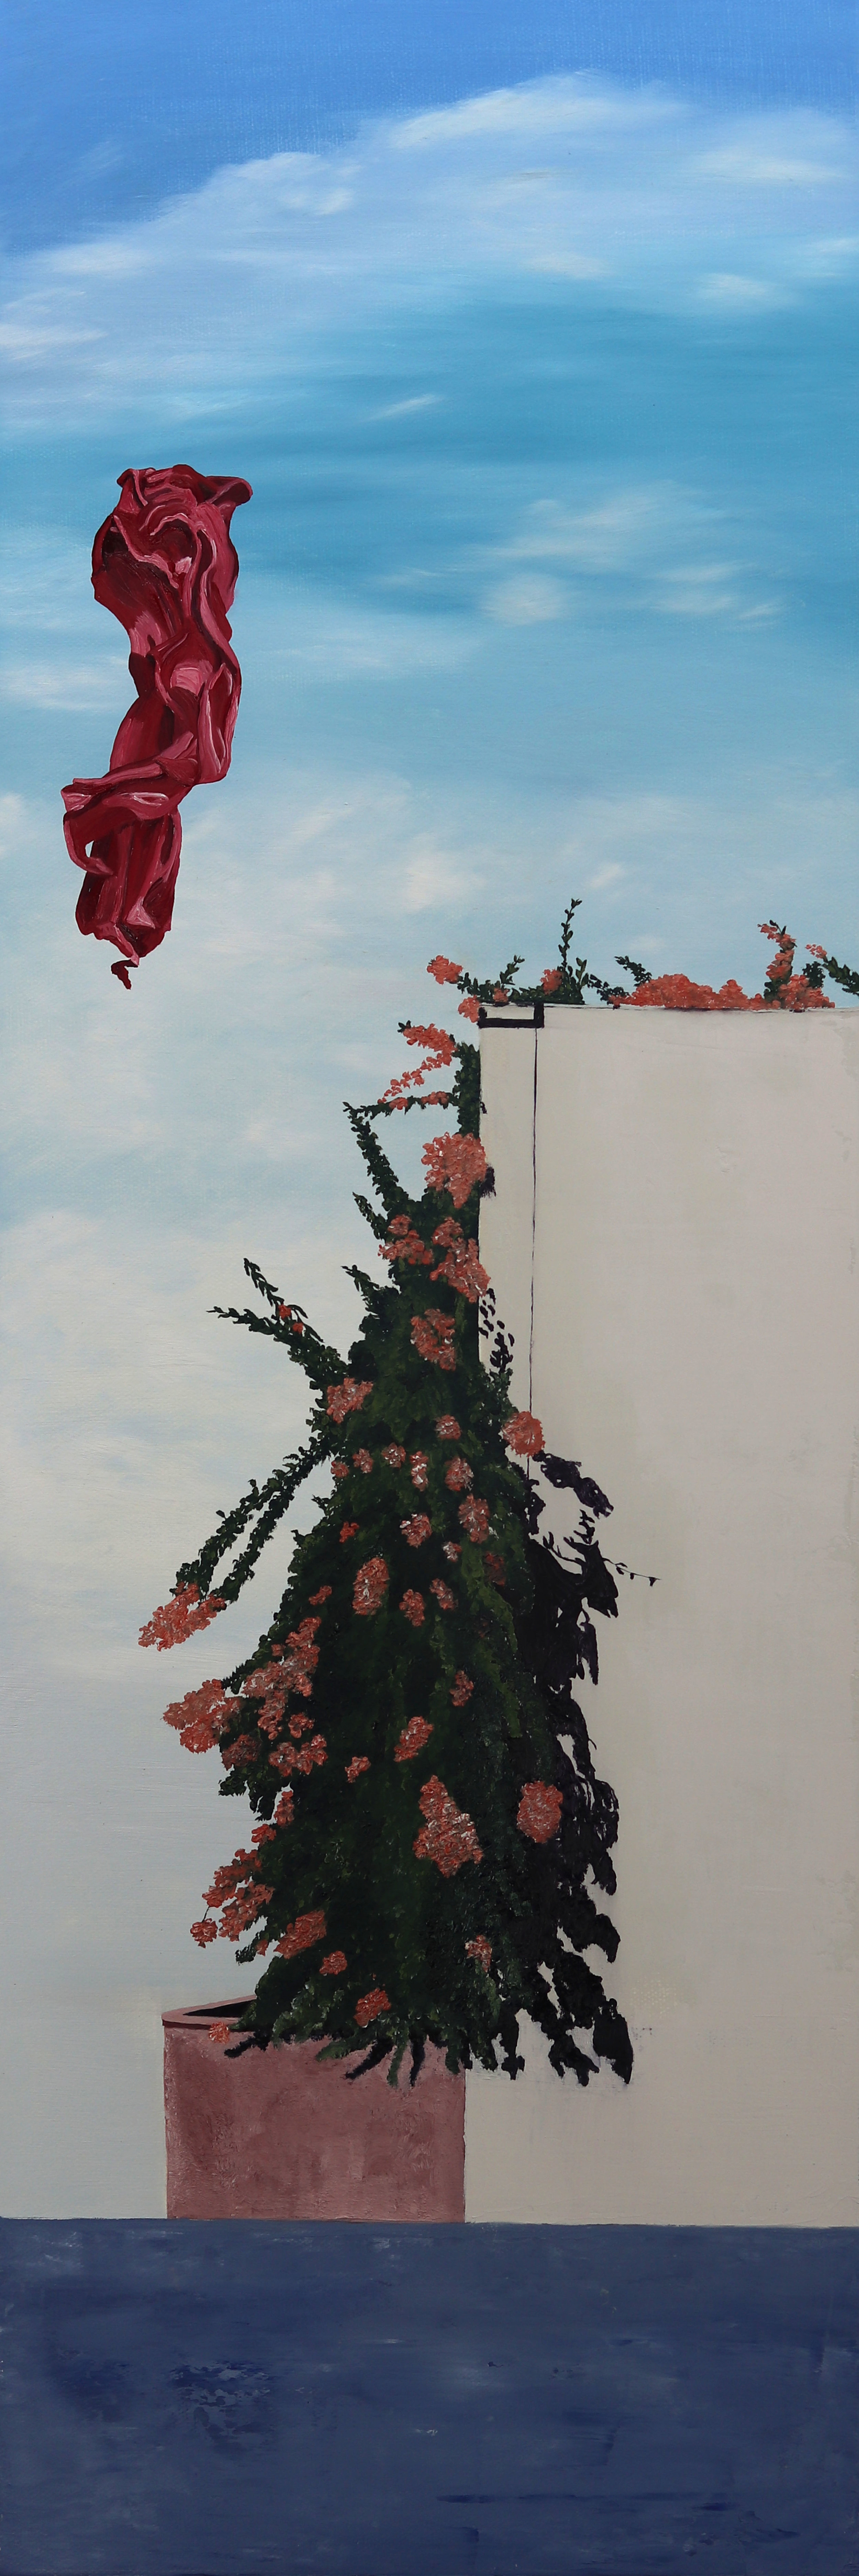 C. Rasmussen    Floating Above    30x10 inches   oil on canvas.